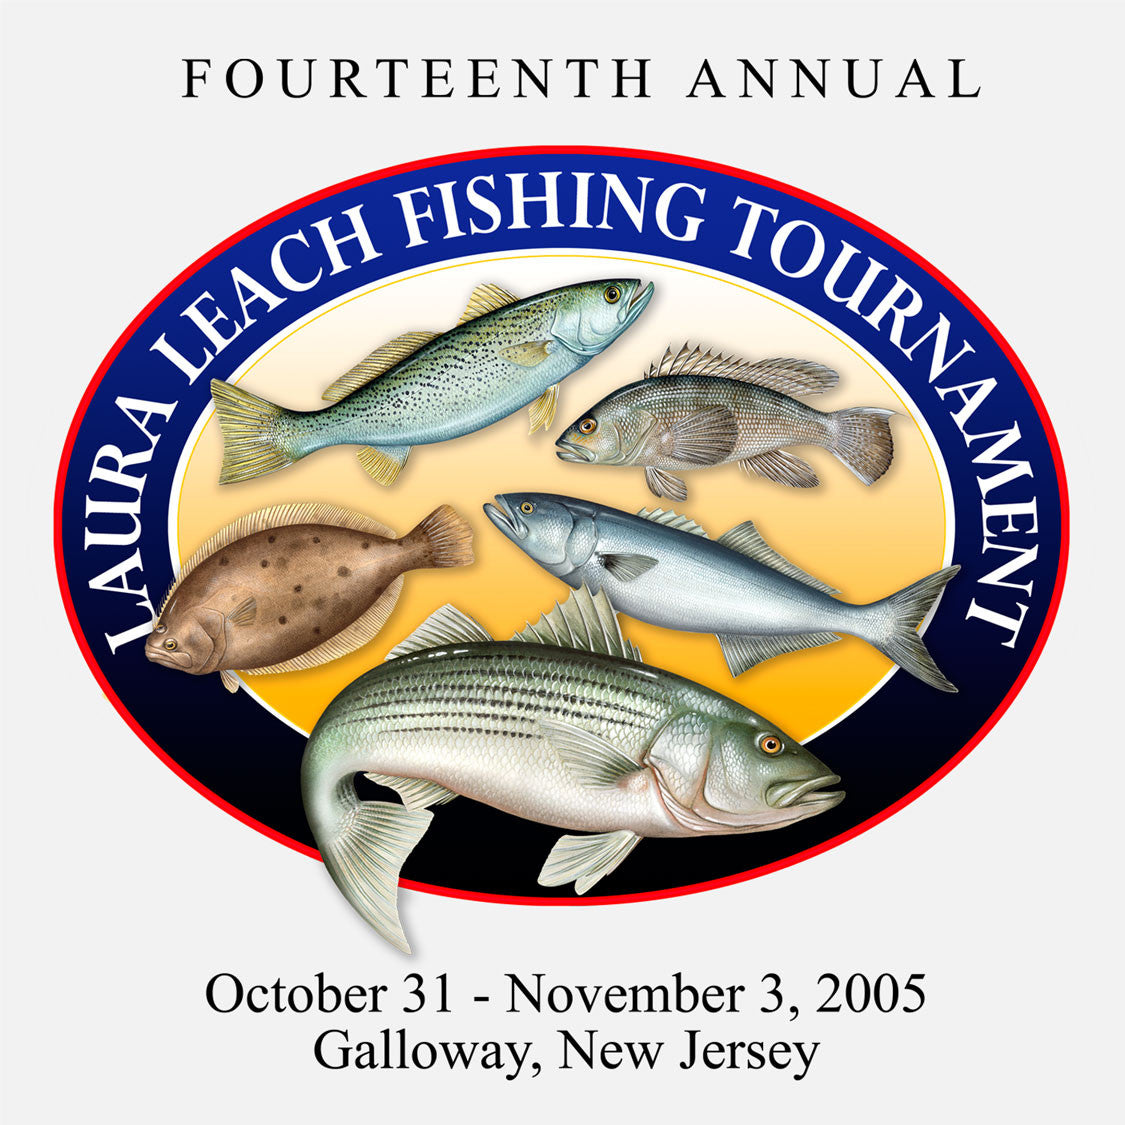 The 14th annual fishing tournament was held in Galloway, New Jersey, 2005. The logo is of several fish within an oval.